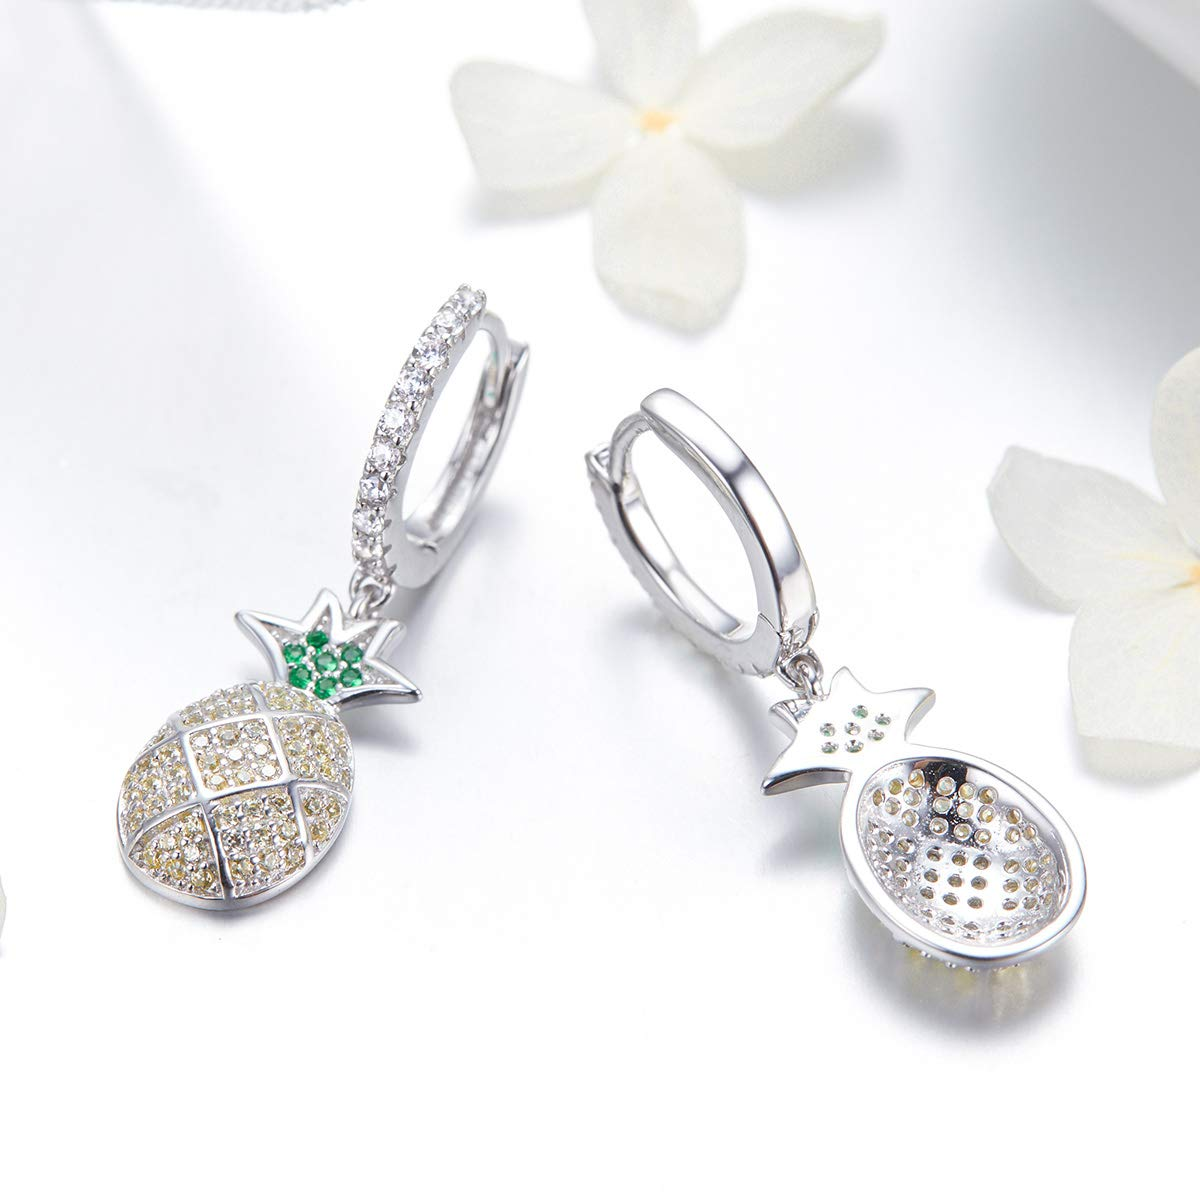 The Kiss Summer Pineapple Dazzling CZ Dangle 925 Sterling Silver Earrings